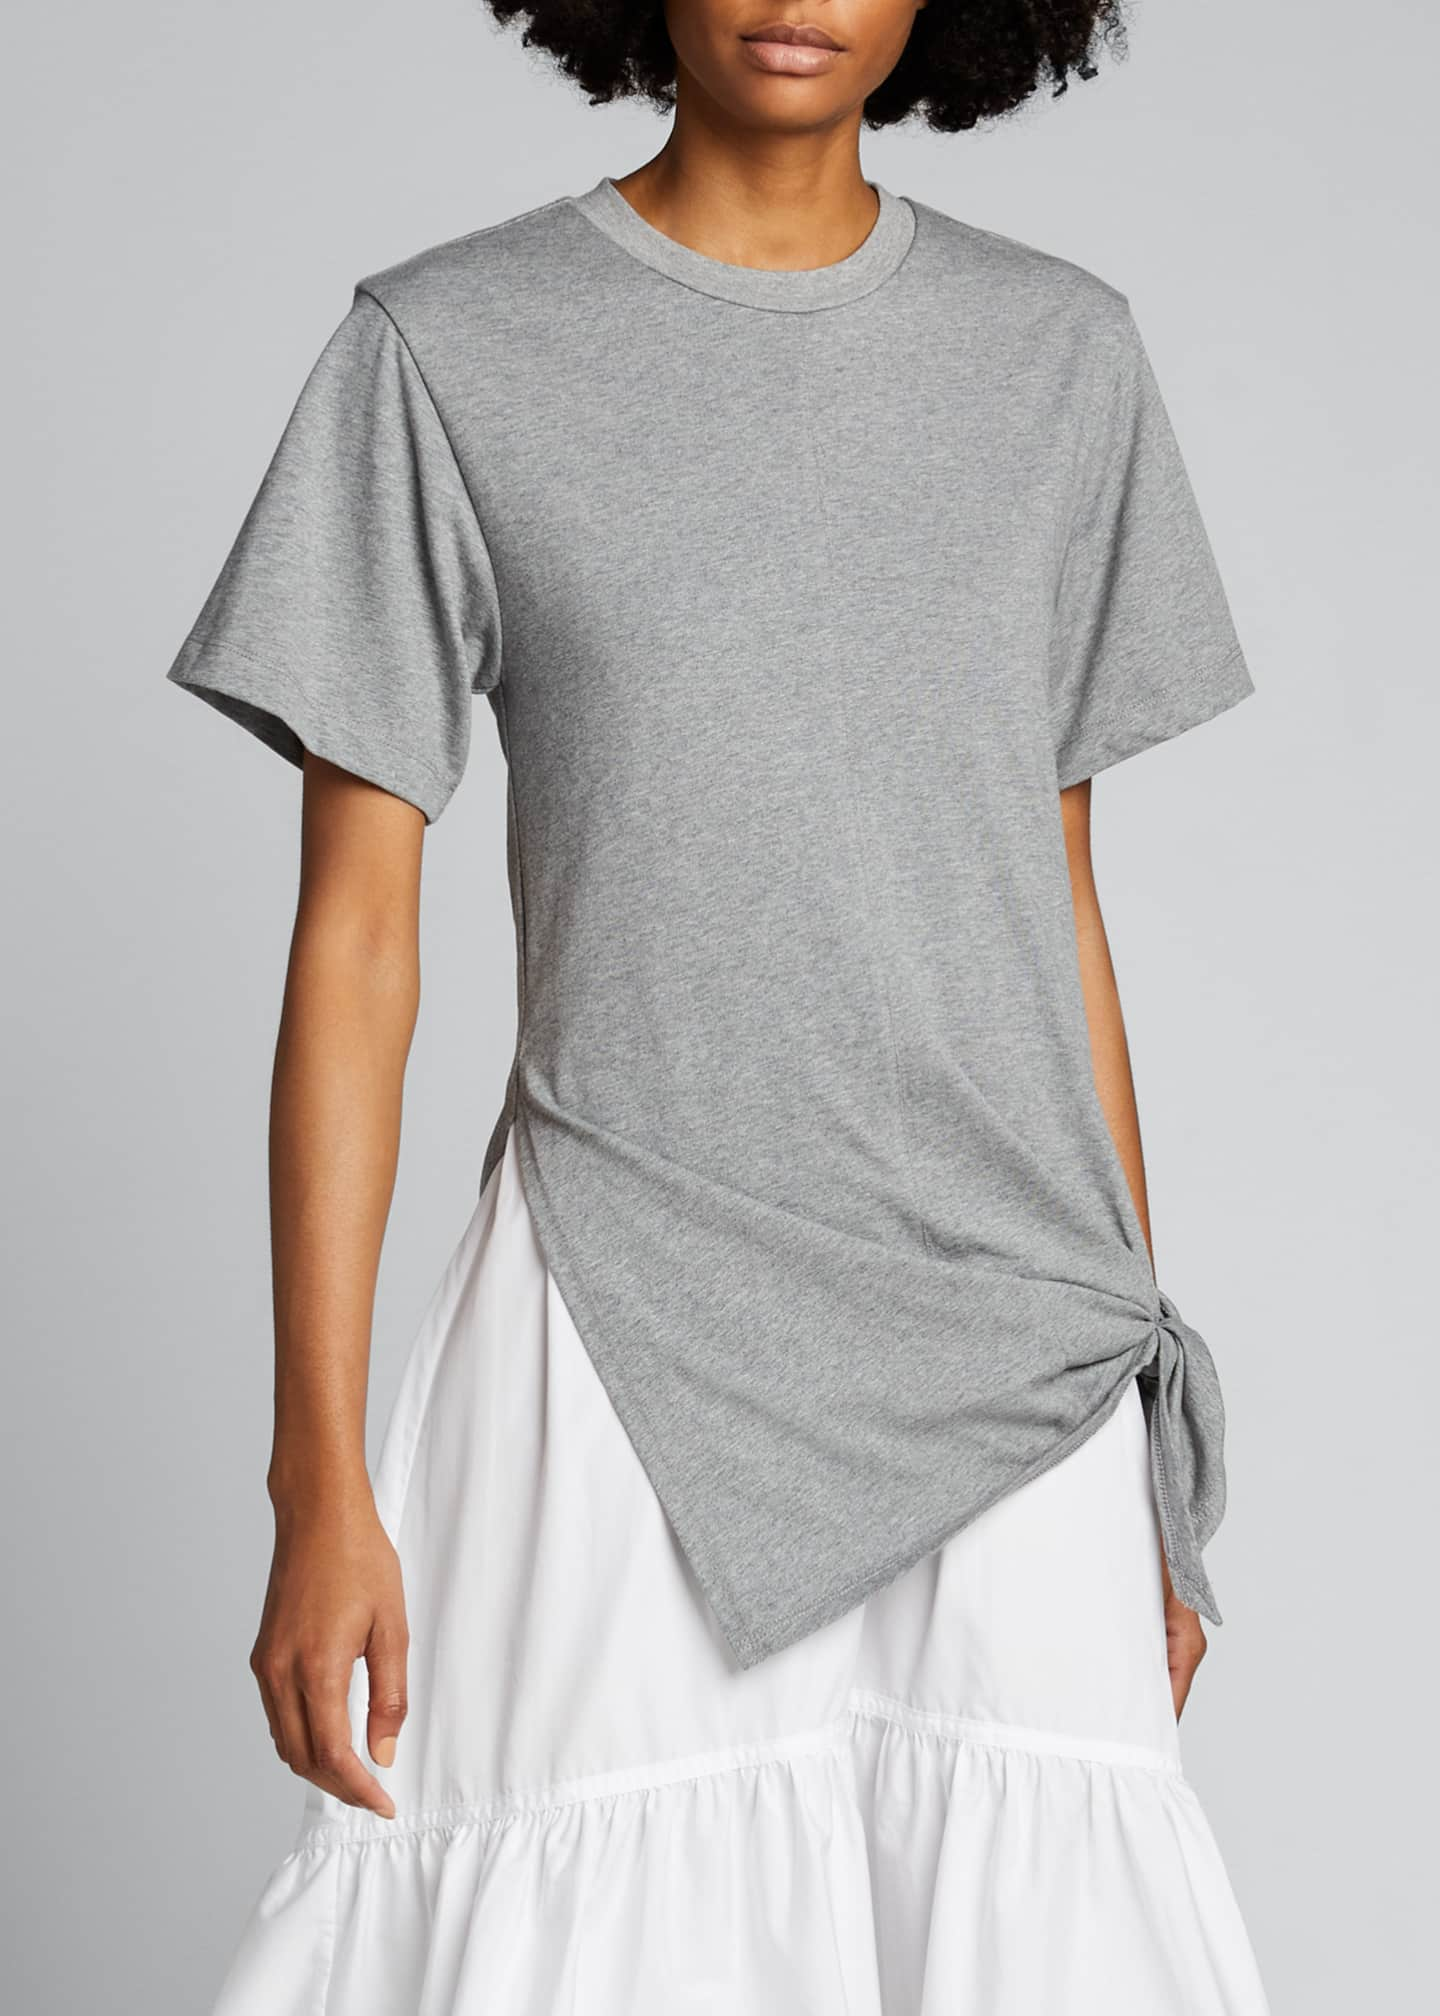 Image 3 of 5: T-Shirt Combo Dress with Side Tie